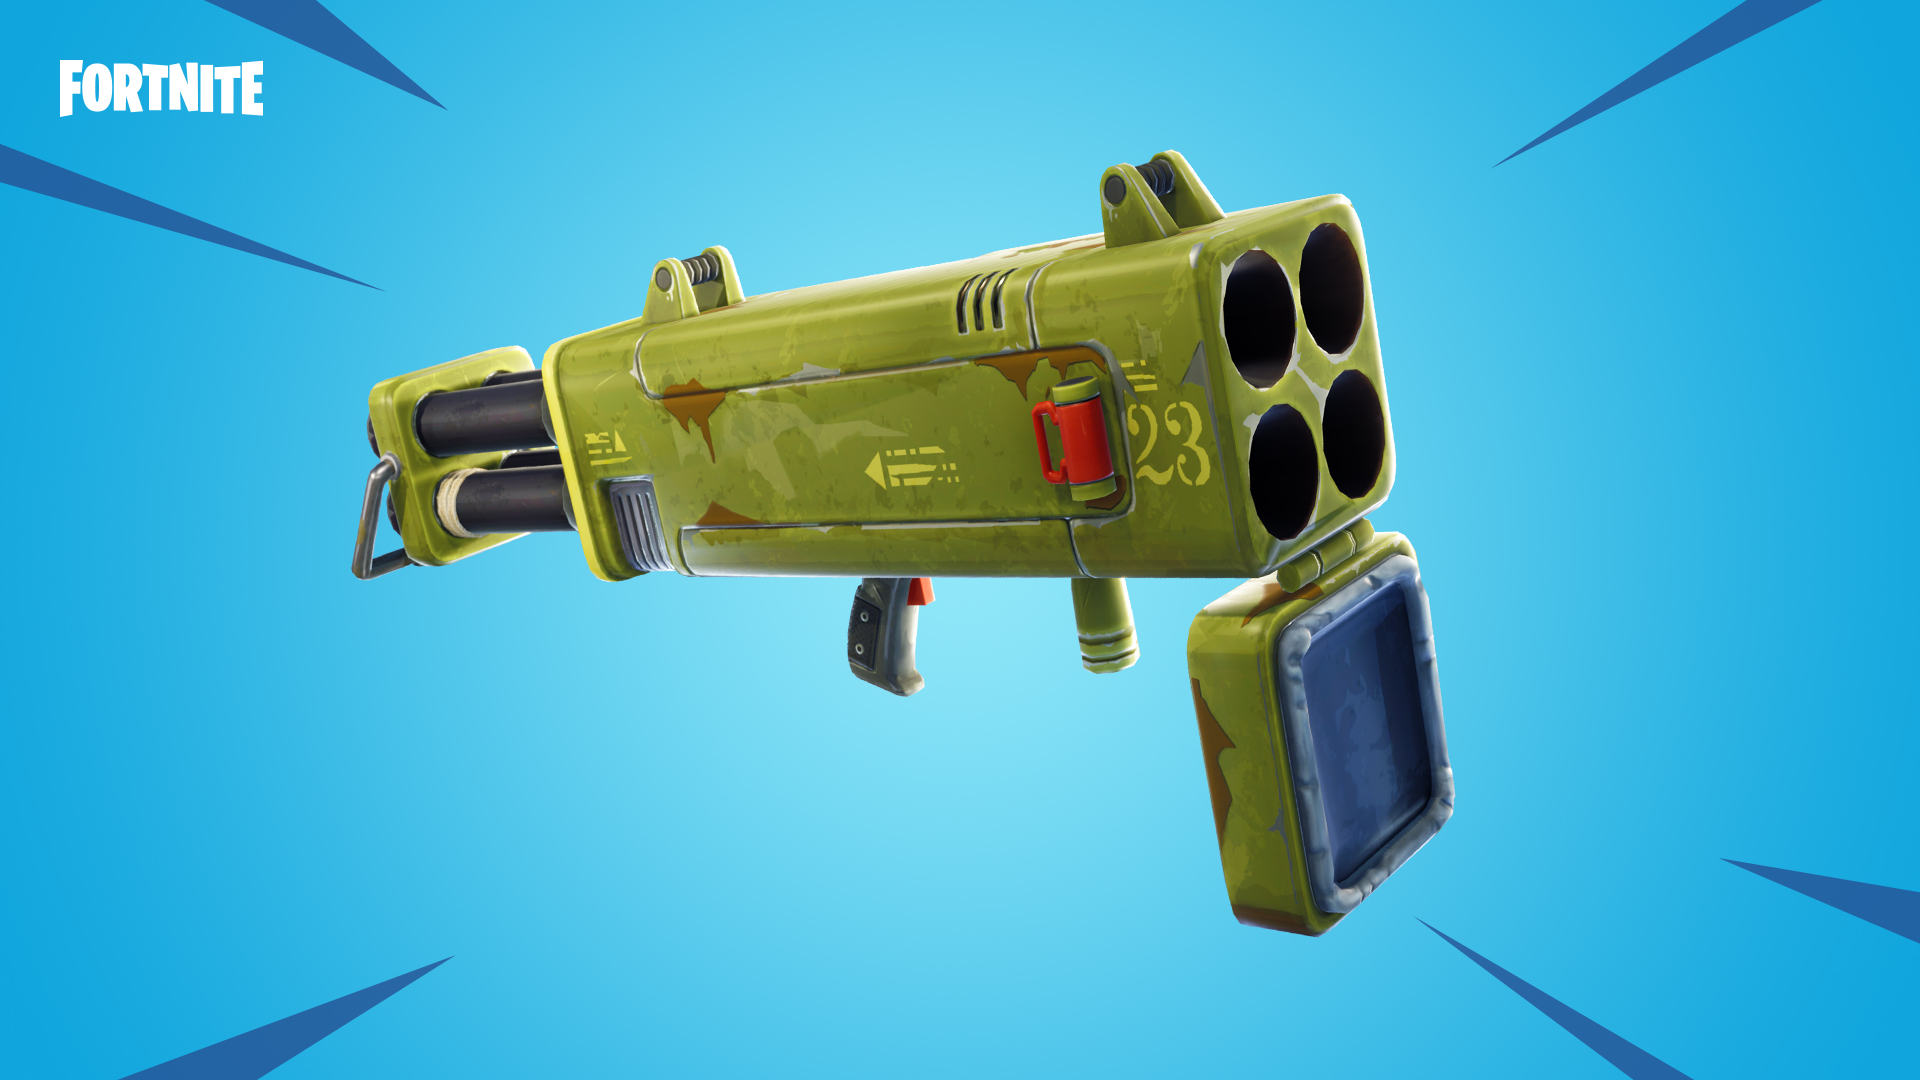 Fortnite v5 30 patch datamine: flamethrower, quad launcher